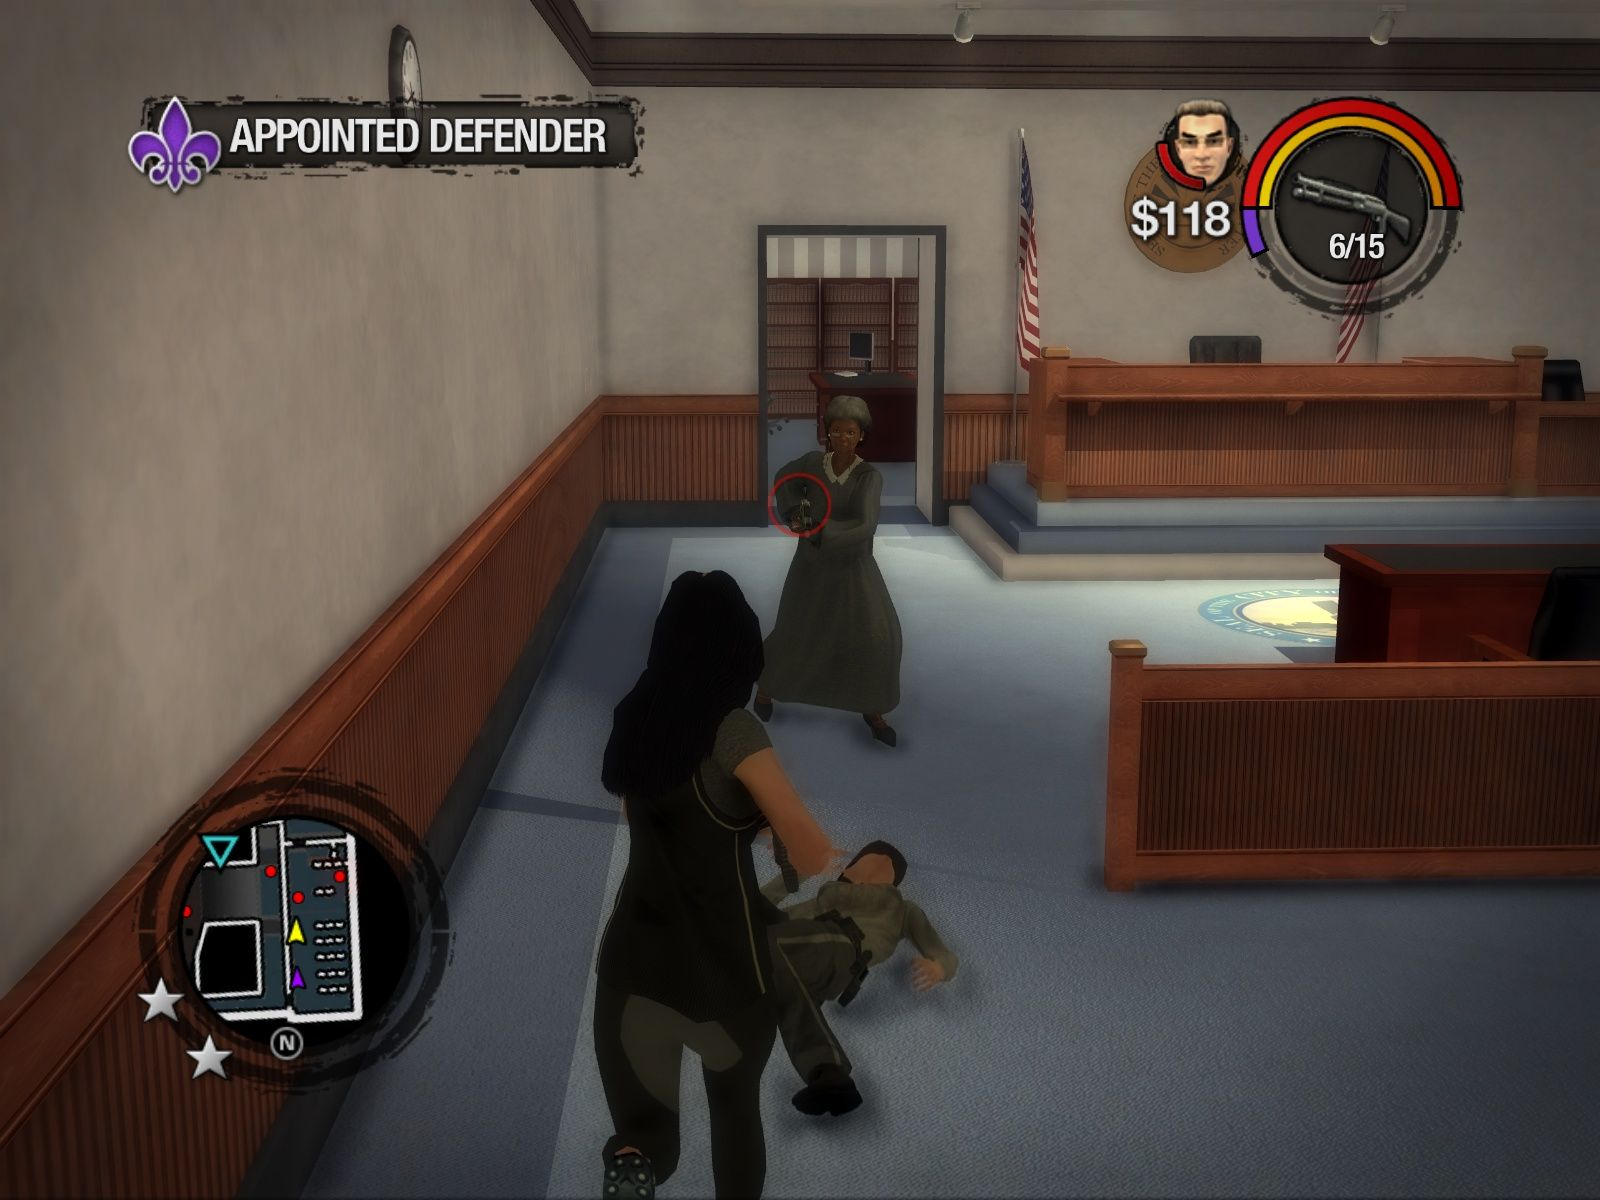 Saints Row 2 Windows Tonight on FOX: The Judge vs. The Girl in Funny Pants